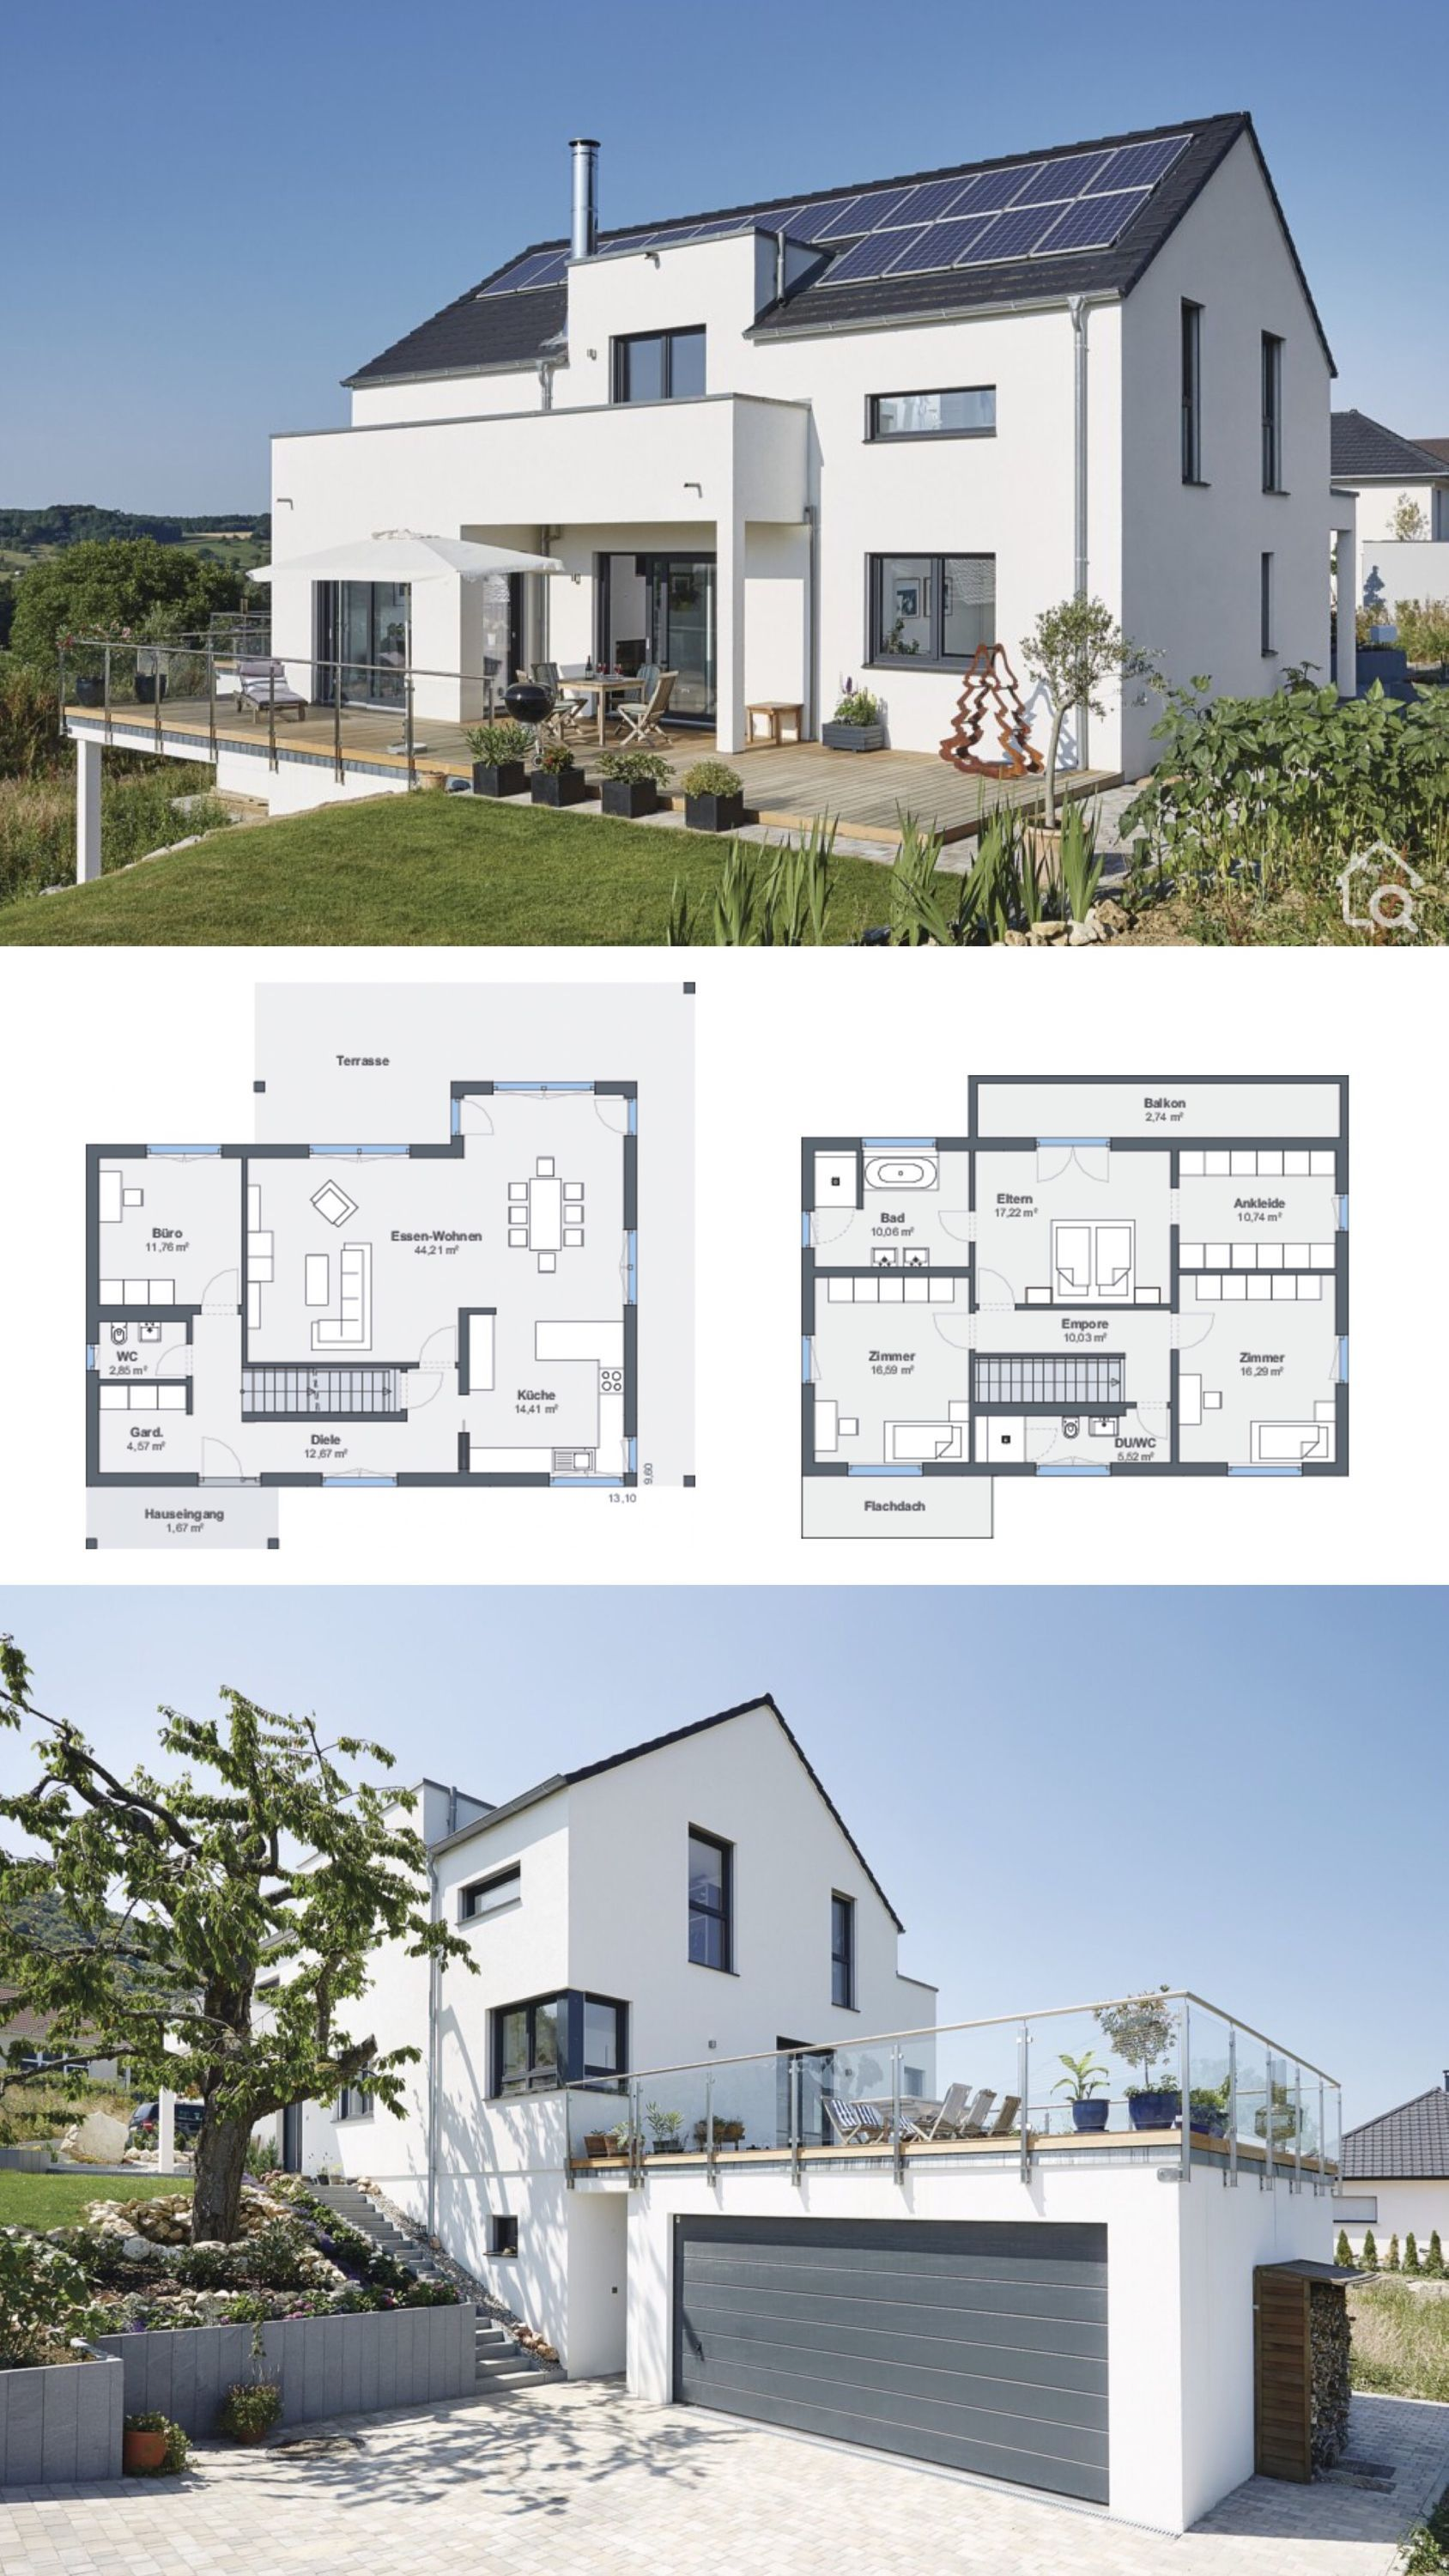 Single Family House Modern Floor Plan With Garage Separate Apartment Gable Roof House Ideas On A Slope Apart In 2020 Modern Floor Plans Gable Roof House Gable Roof